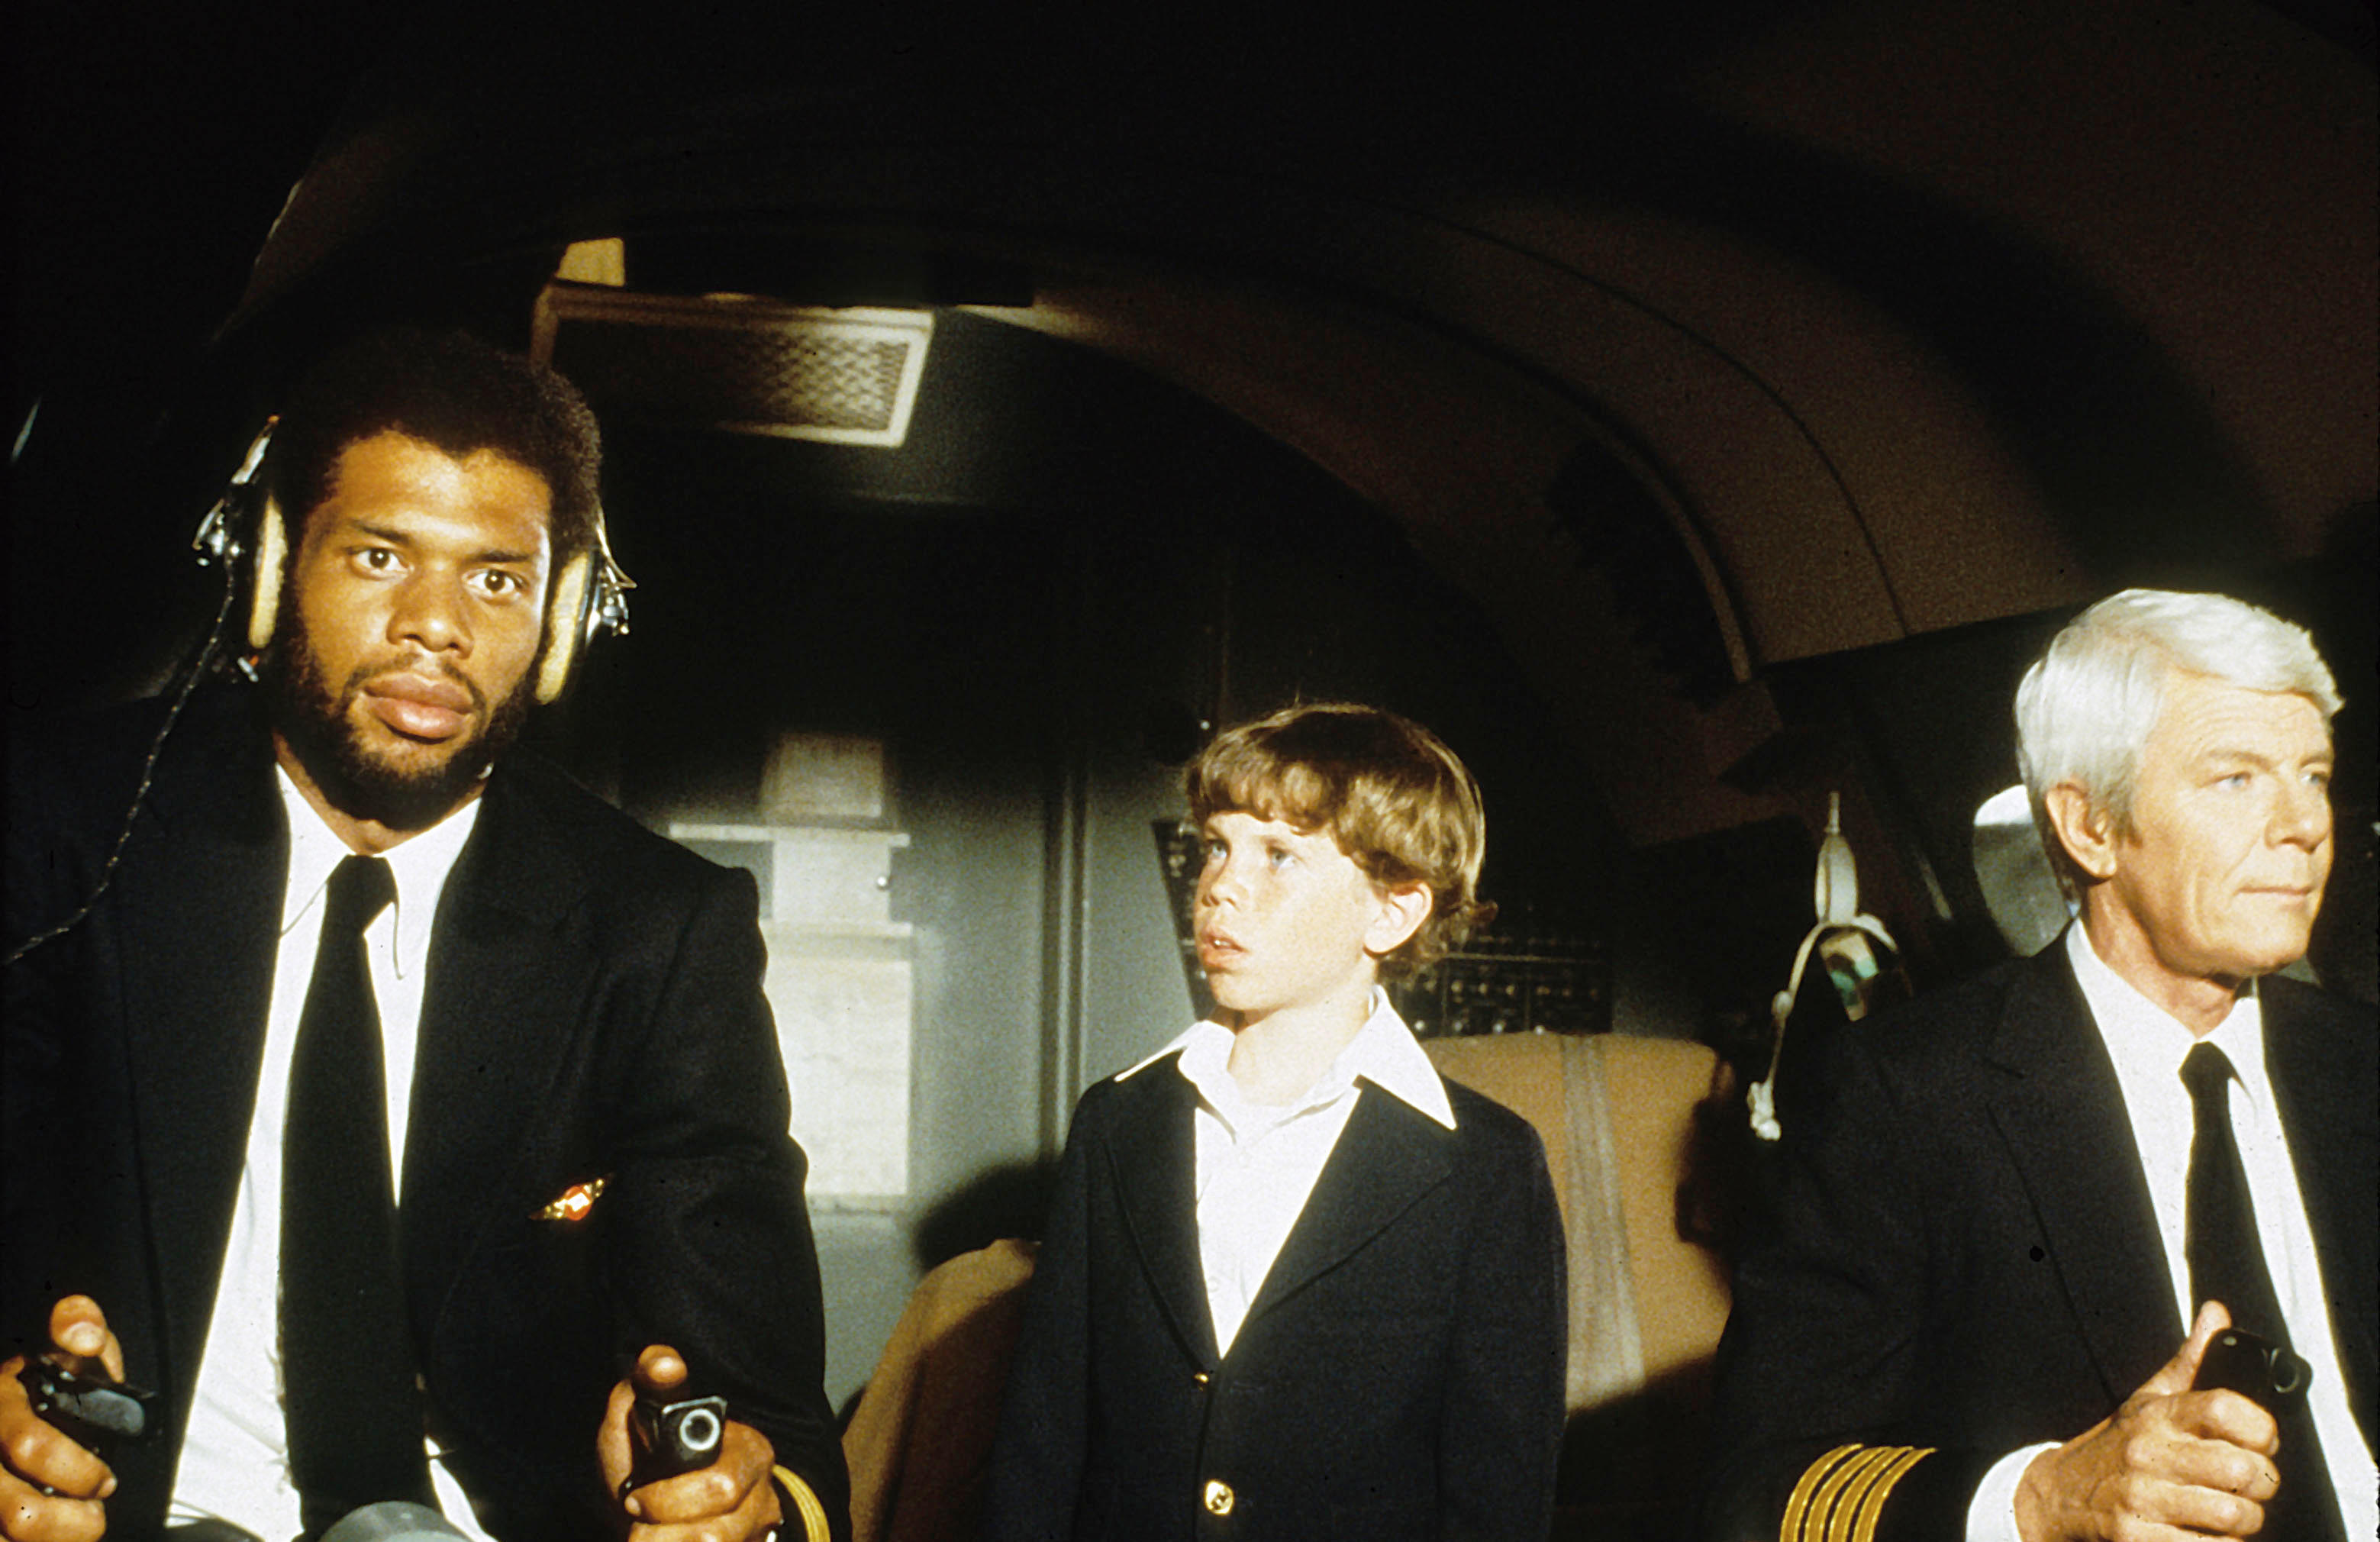 FWP9RP Y a t il un pilote dans l'avion Airplane 1980 real : Jim Abrahams et David et Jerry Zucker Peter Graves Kareem Abdul Jabbar COLLECTION CHRISTOPHEL